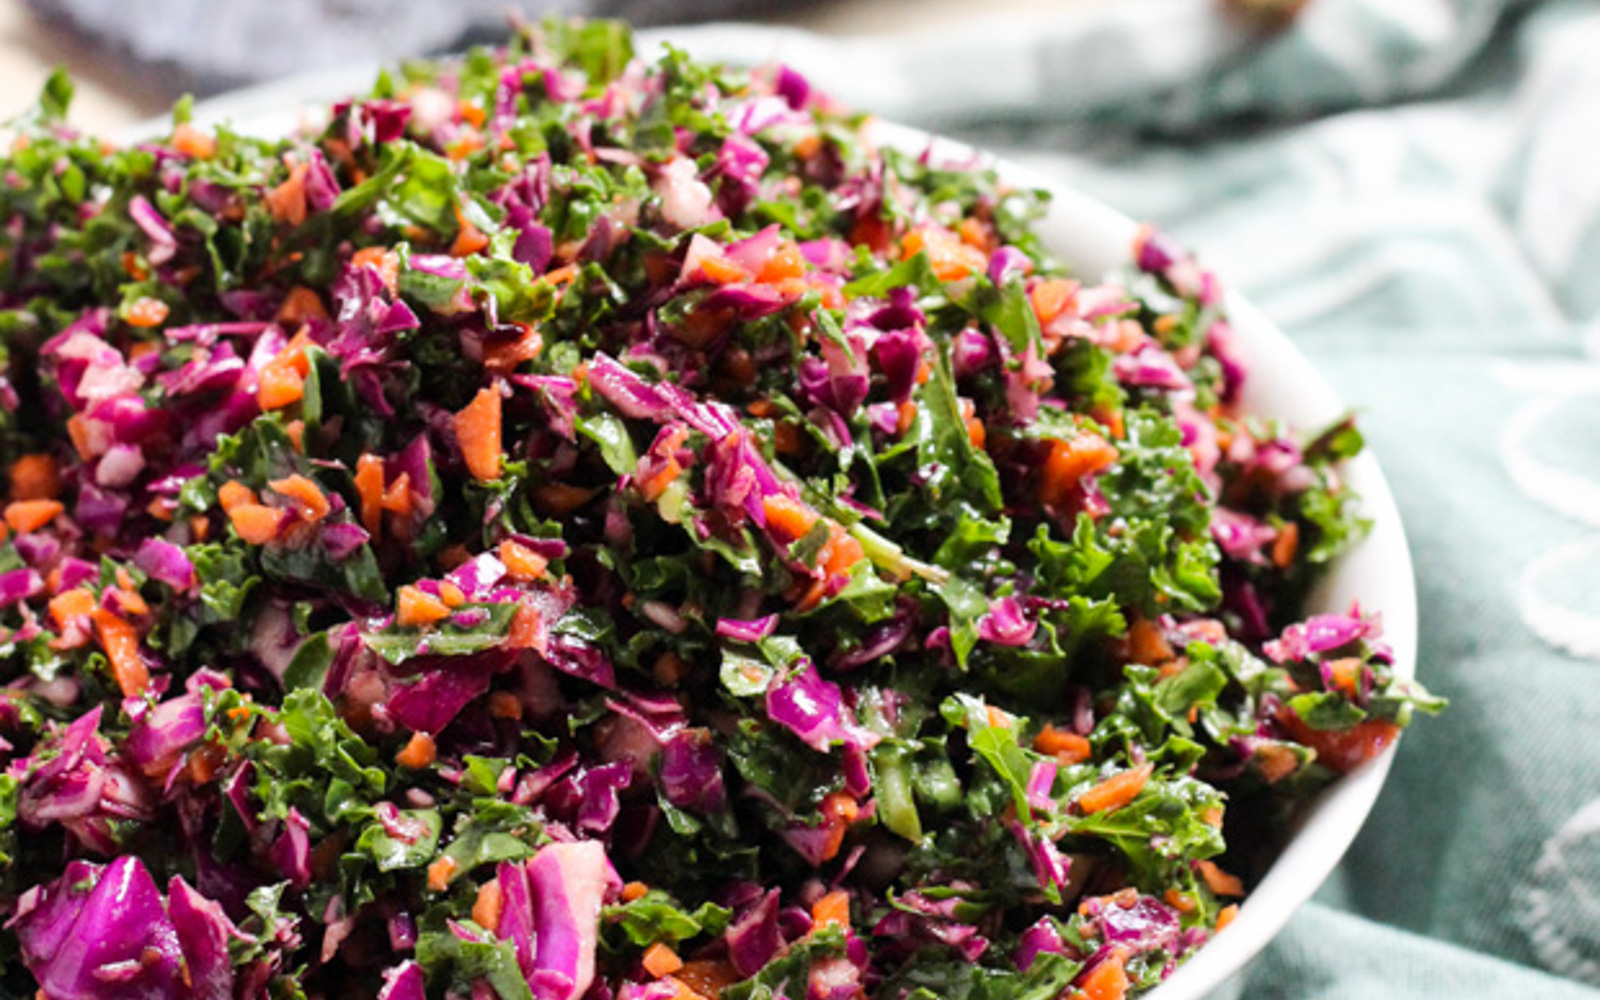 Kale, Cabbage, and Carrot Slaw With Tangy Shallot Vinaigrette